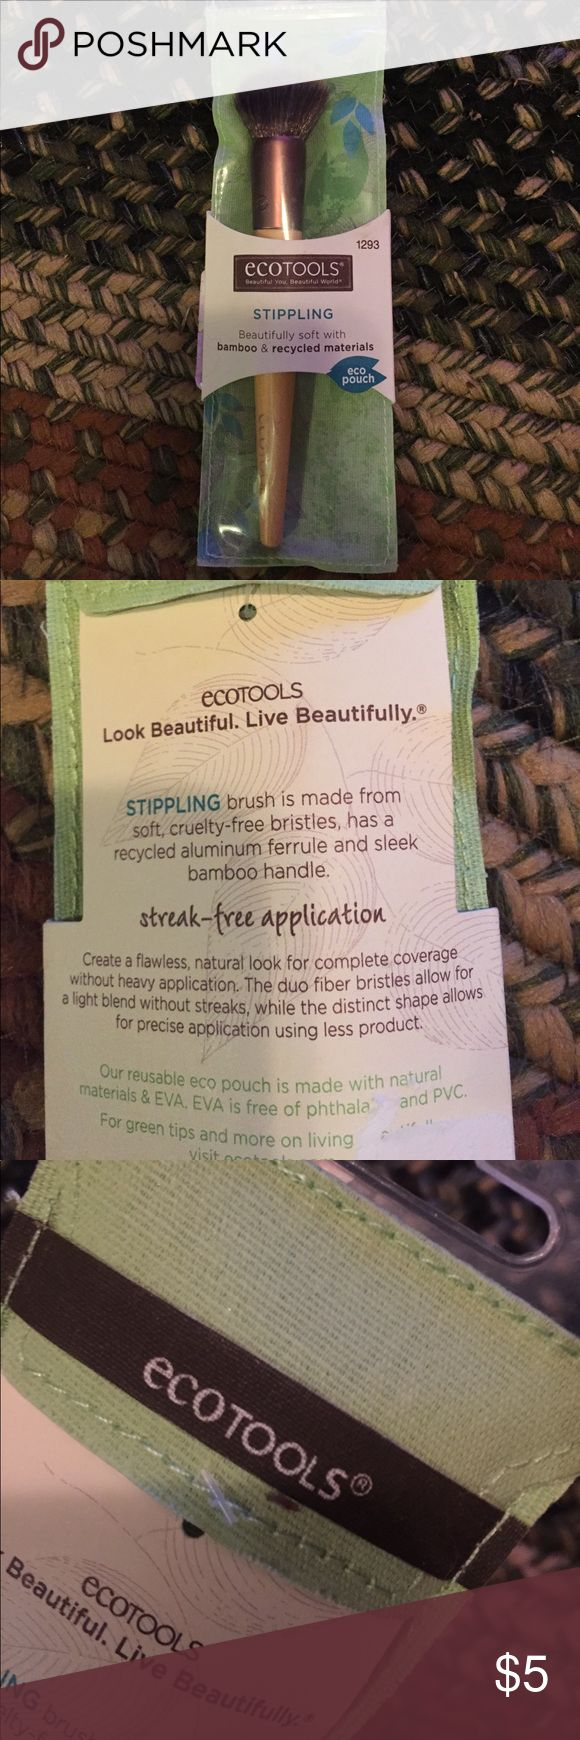 NTW stippling brush! Never been opened stippling brush!! ecotools Makeup Brushes & Tools